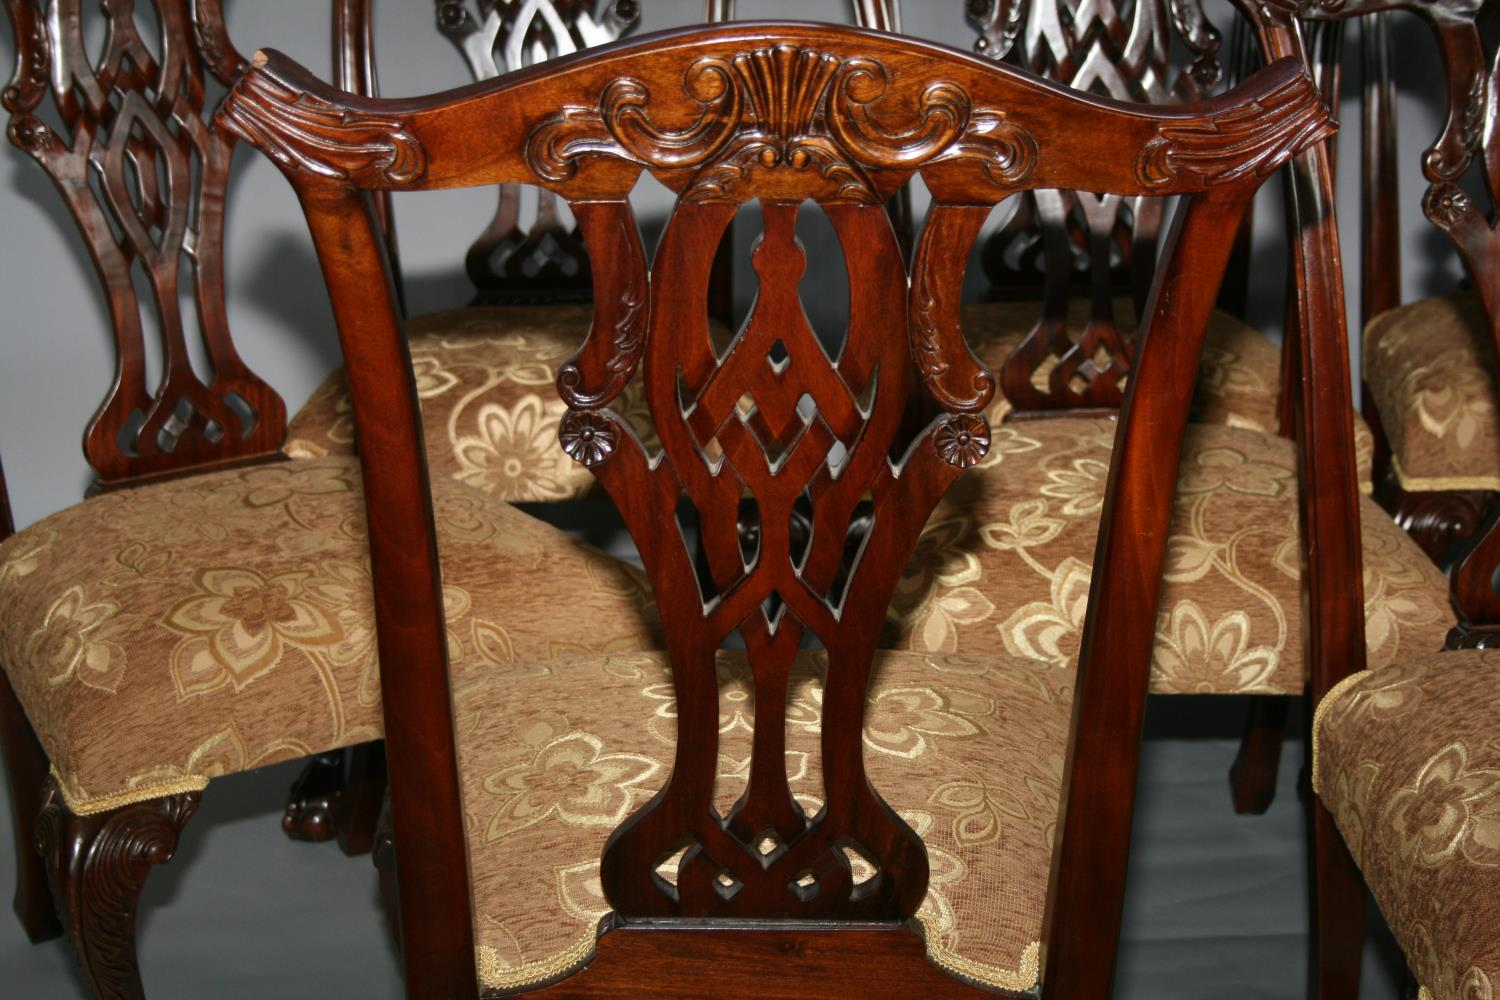 Set of eight Chippendale style dining chairs with floral gold upholstery. 59W x 103H - Image 2 of 3